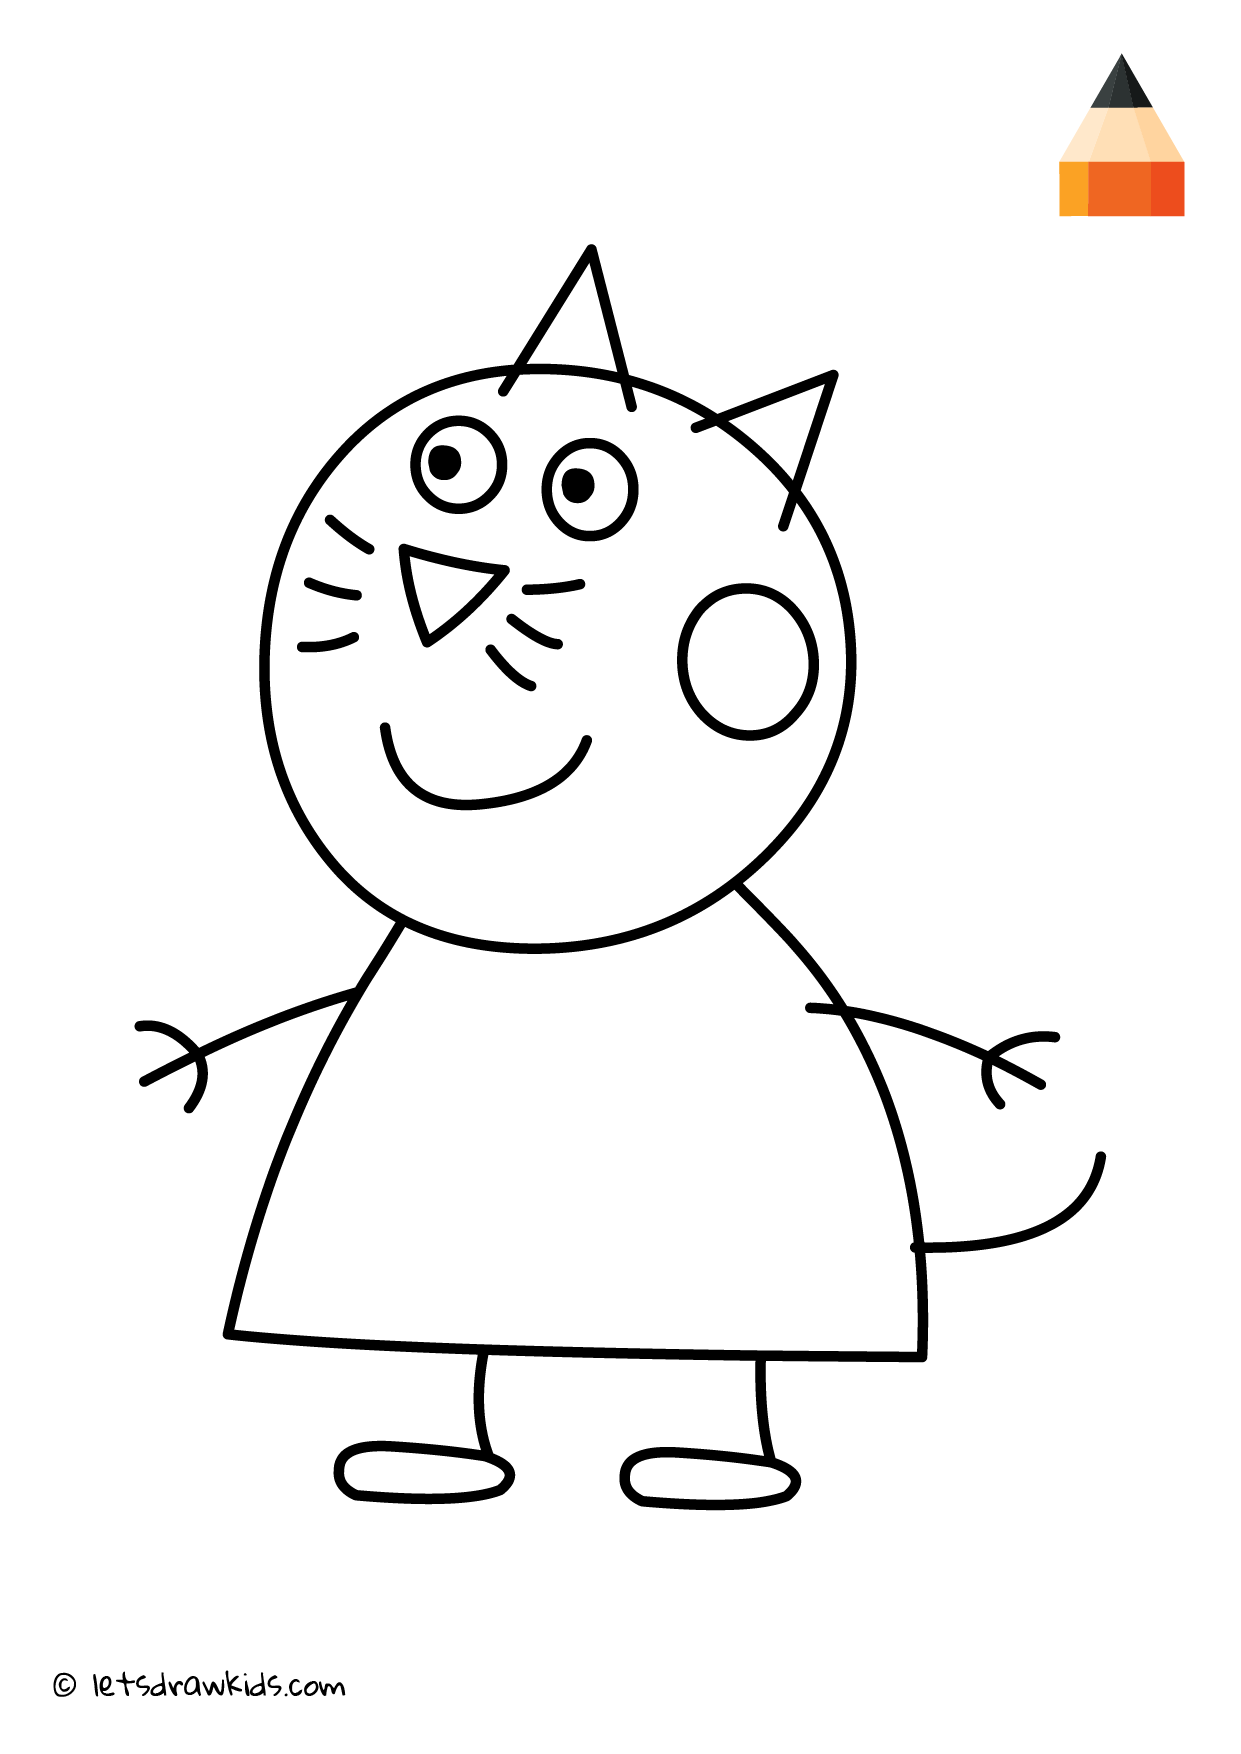 Coloring Page Peppa Pig Candy Cat Peppa Pig Coloring Pages Peppa Pig Colouring Kids Coloring Books